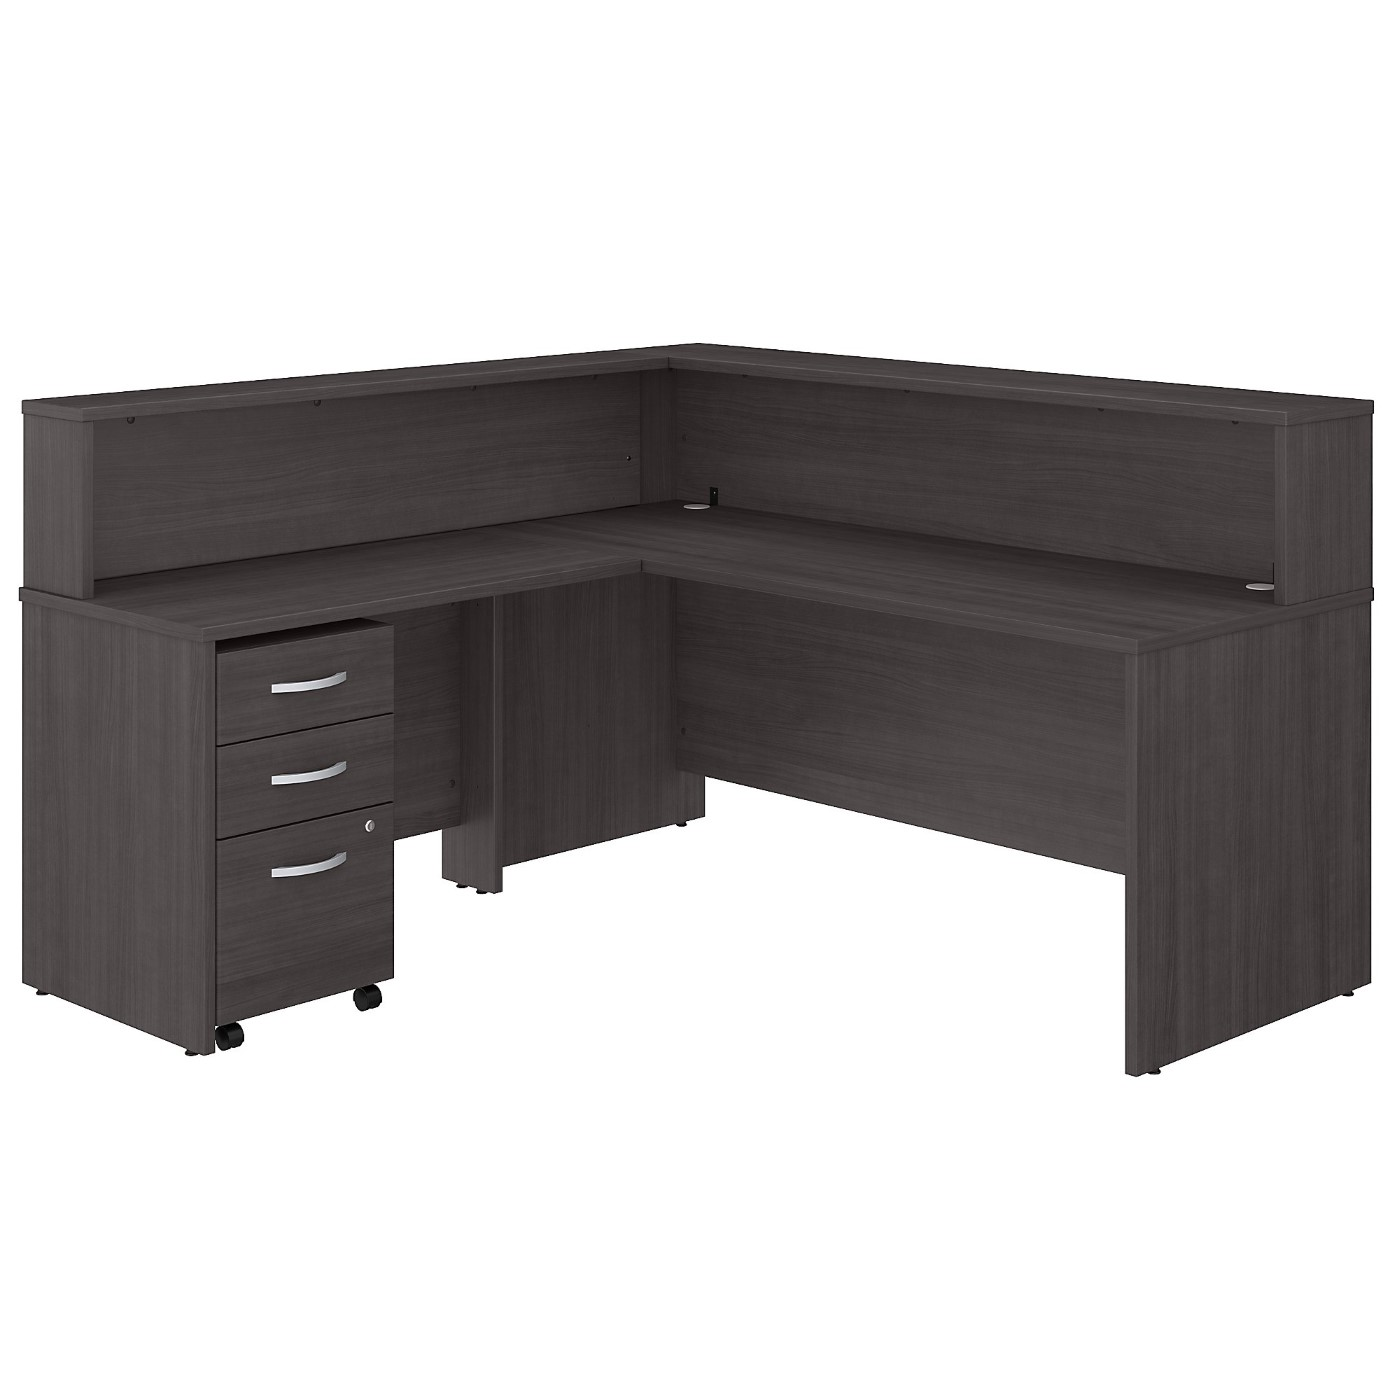 BUSH BUSINESS FURNITURE STUDIO C 72W L SHAPED RECEPTION DESK WITH SHELF AND MOBILE FILE CABINET. FREE SHIPPING